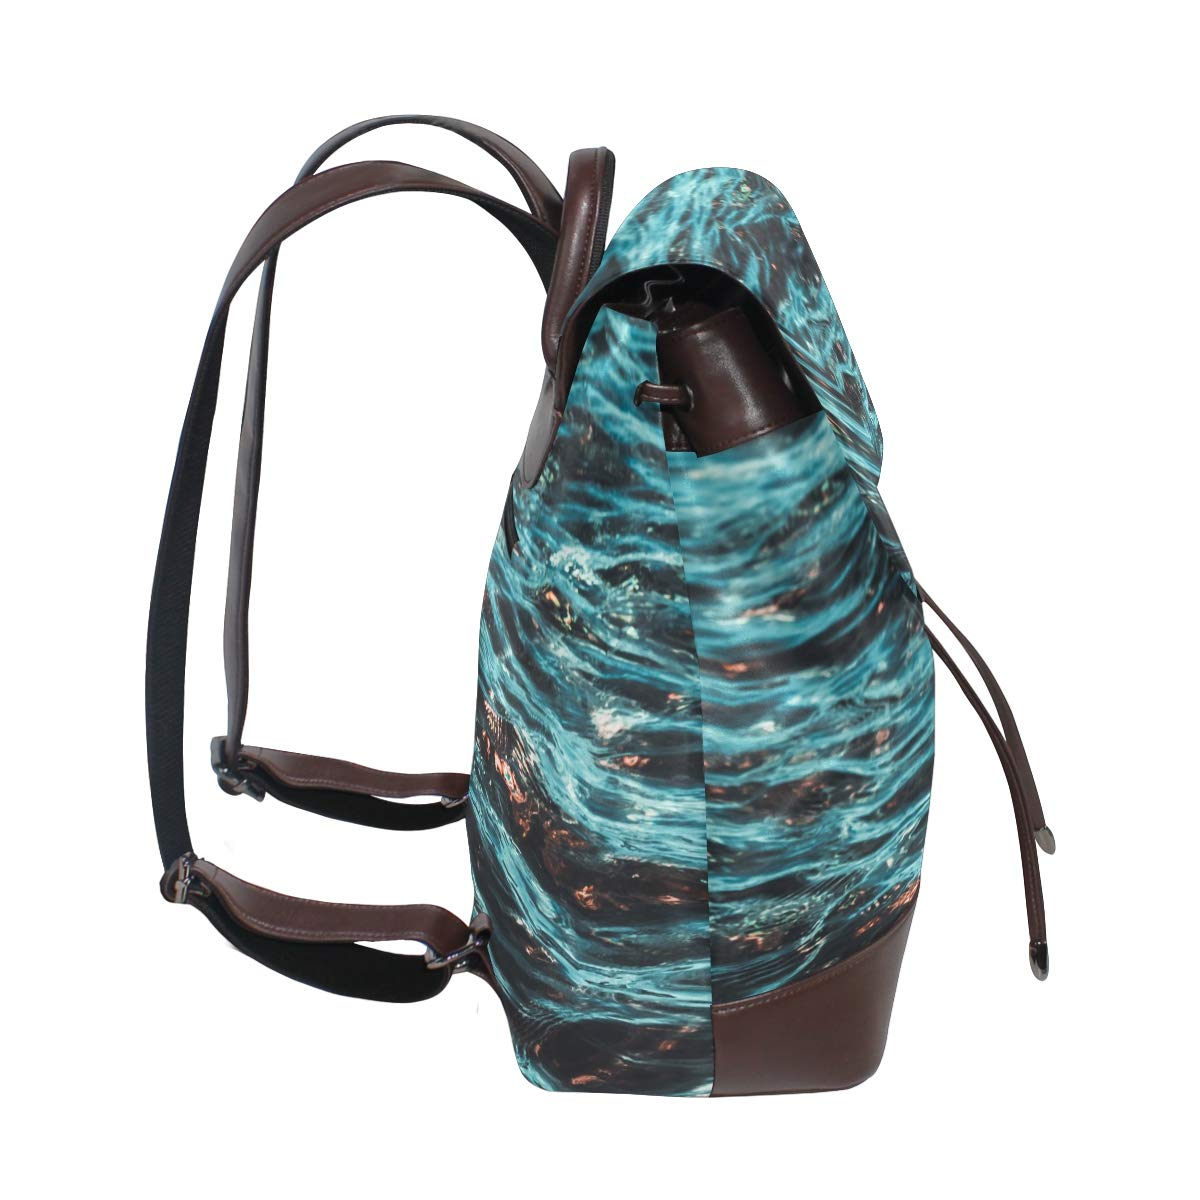 Carrottop Leather Backpack for Women The Night At The Ocean Shoulder Bag Backpack for Casual Daypack